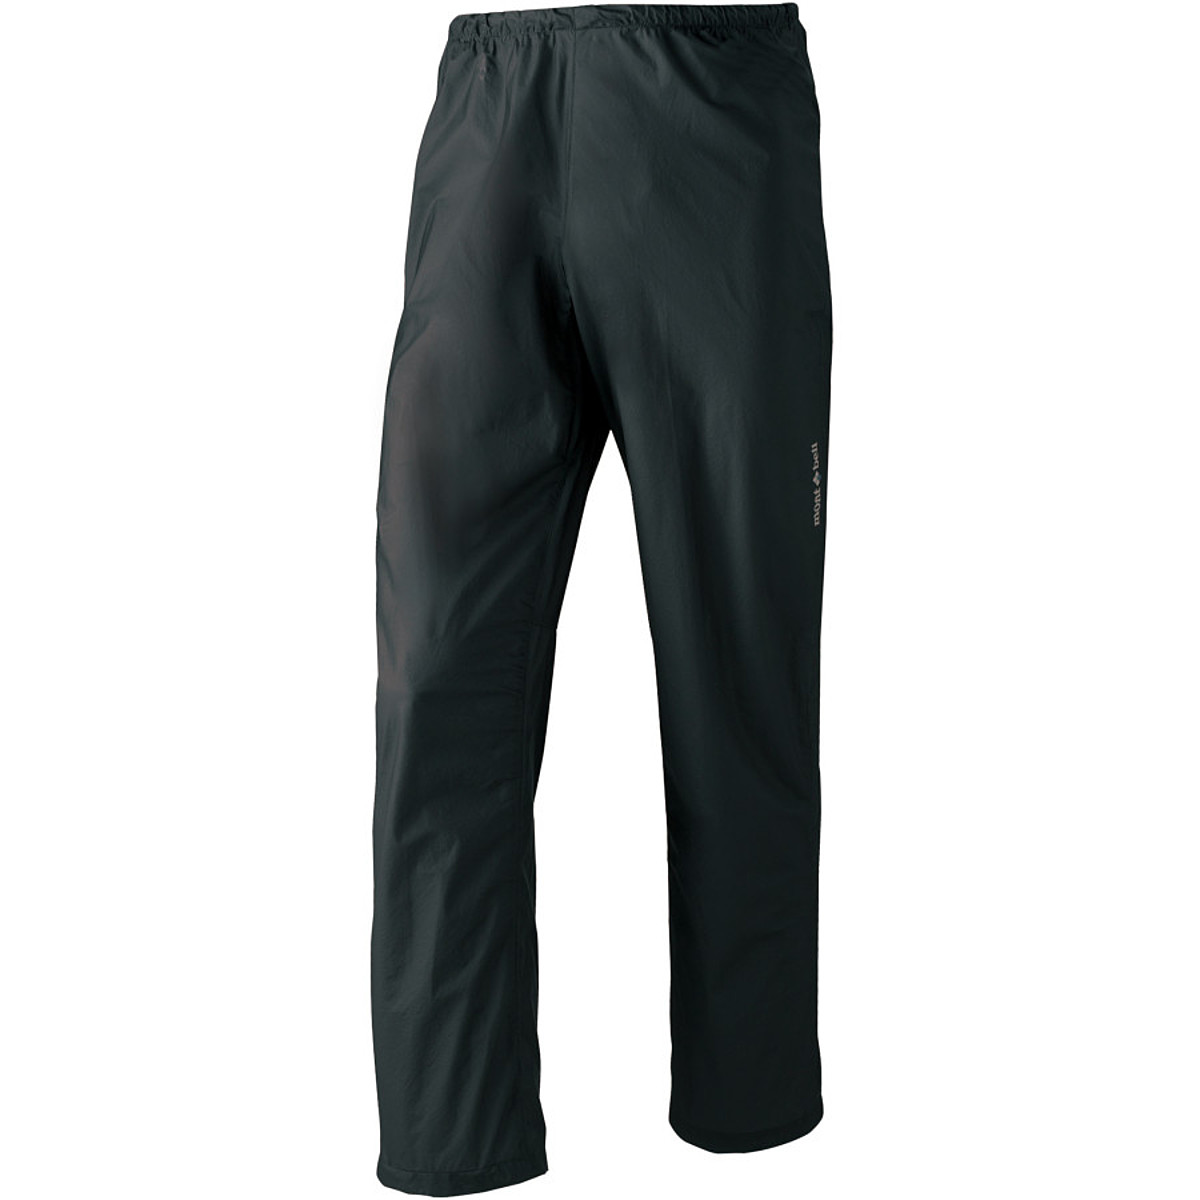 MontBell Dynamo Wind Pant